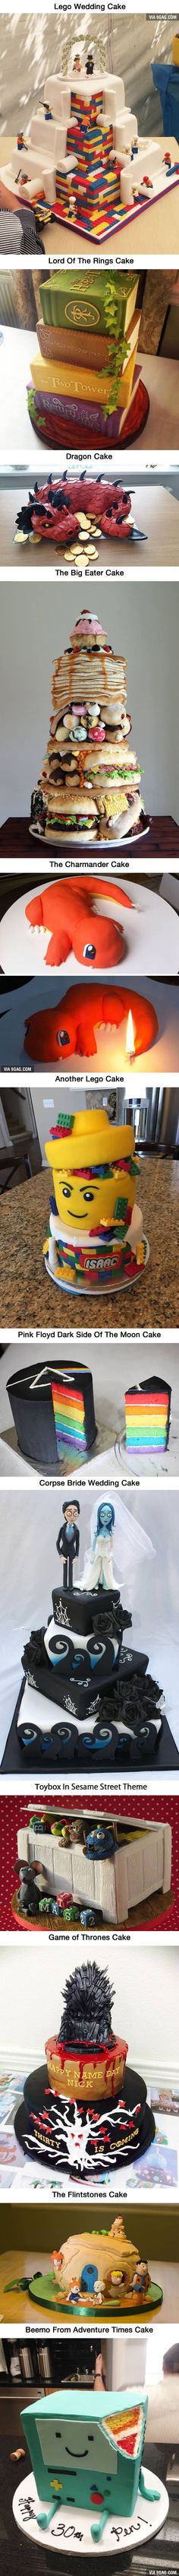 Creative Geeky Cakes That Are Too Cool To Eat